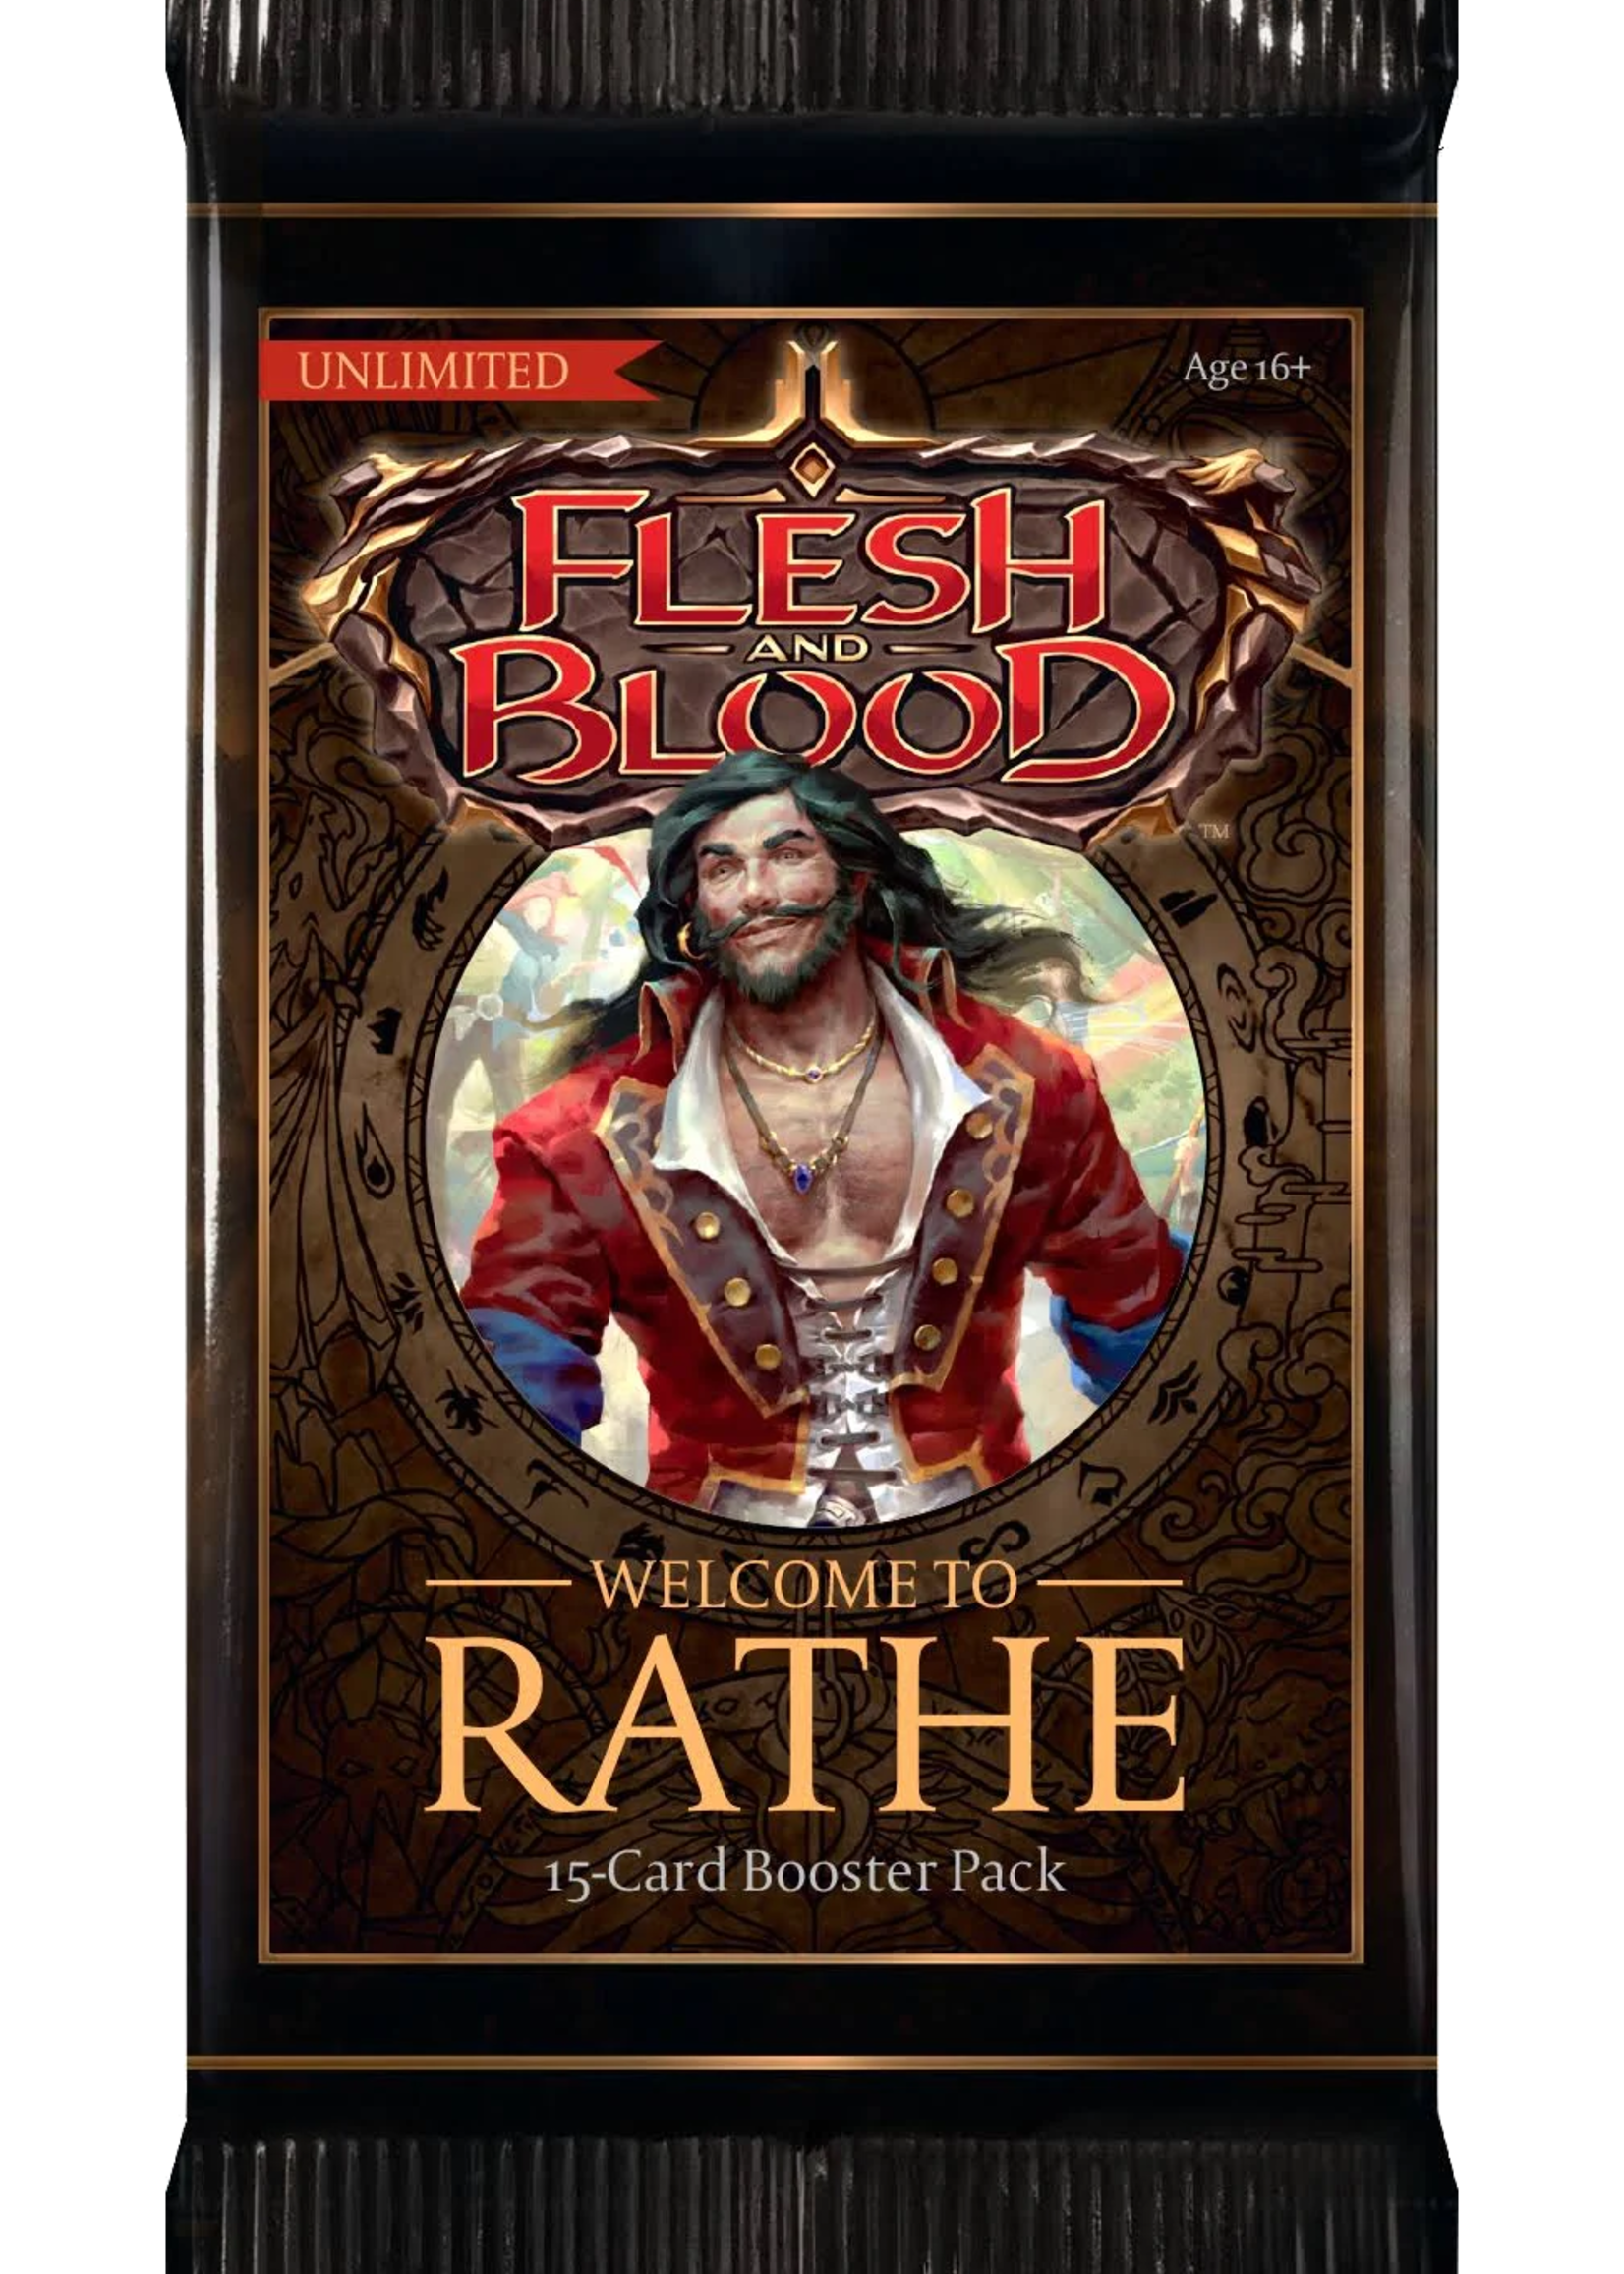 Flesh and Blood Flesh and Blood - Welcome to Rathe - Unlimited Single